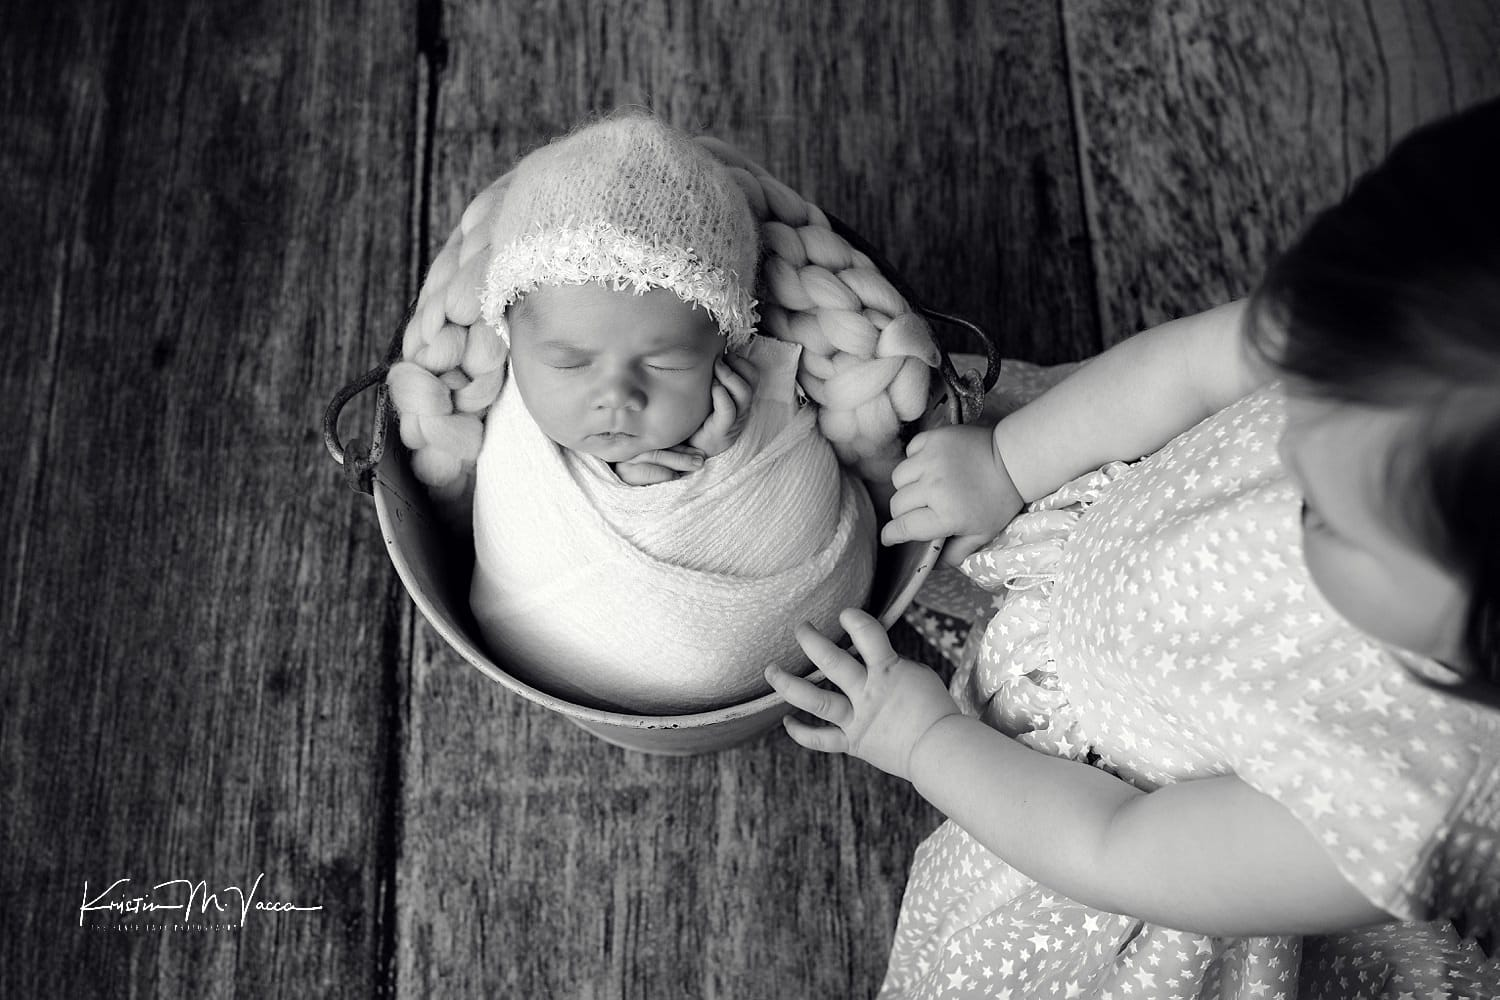 Newborn sibling photos with Charlie & Maddie by West Hartford, CT photographer The Flash Lady Photography